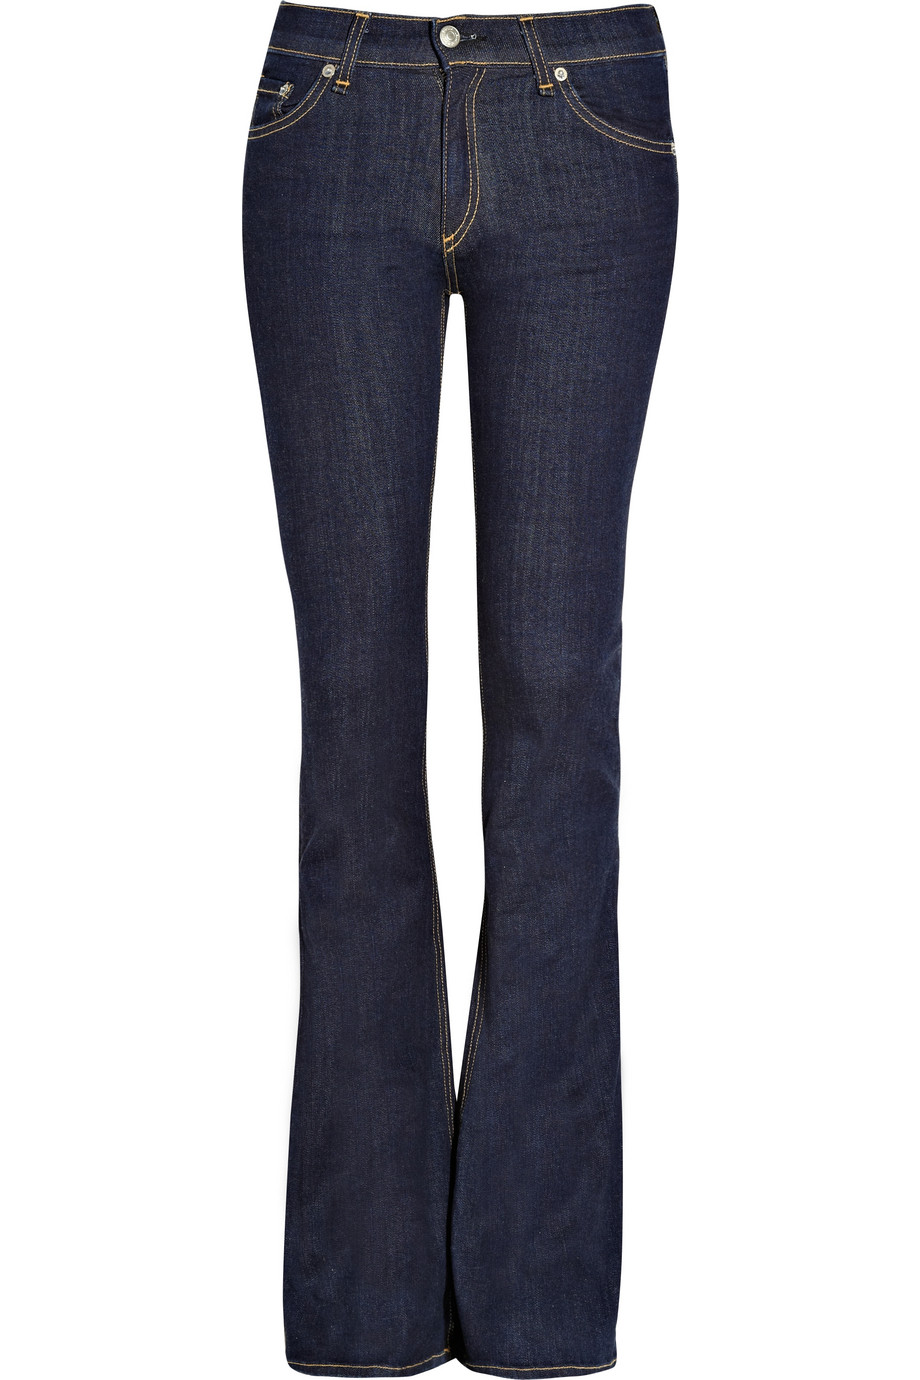 rag-bone-blue-mid-rise-flared-jeans-product-1-439219-723606530